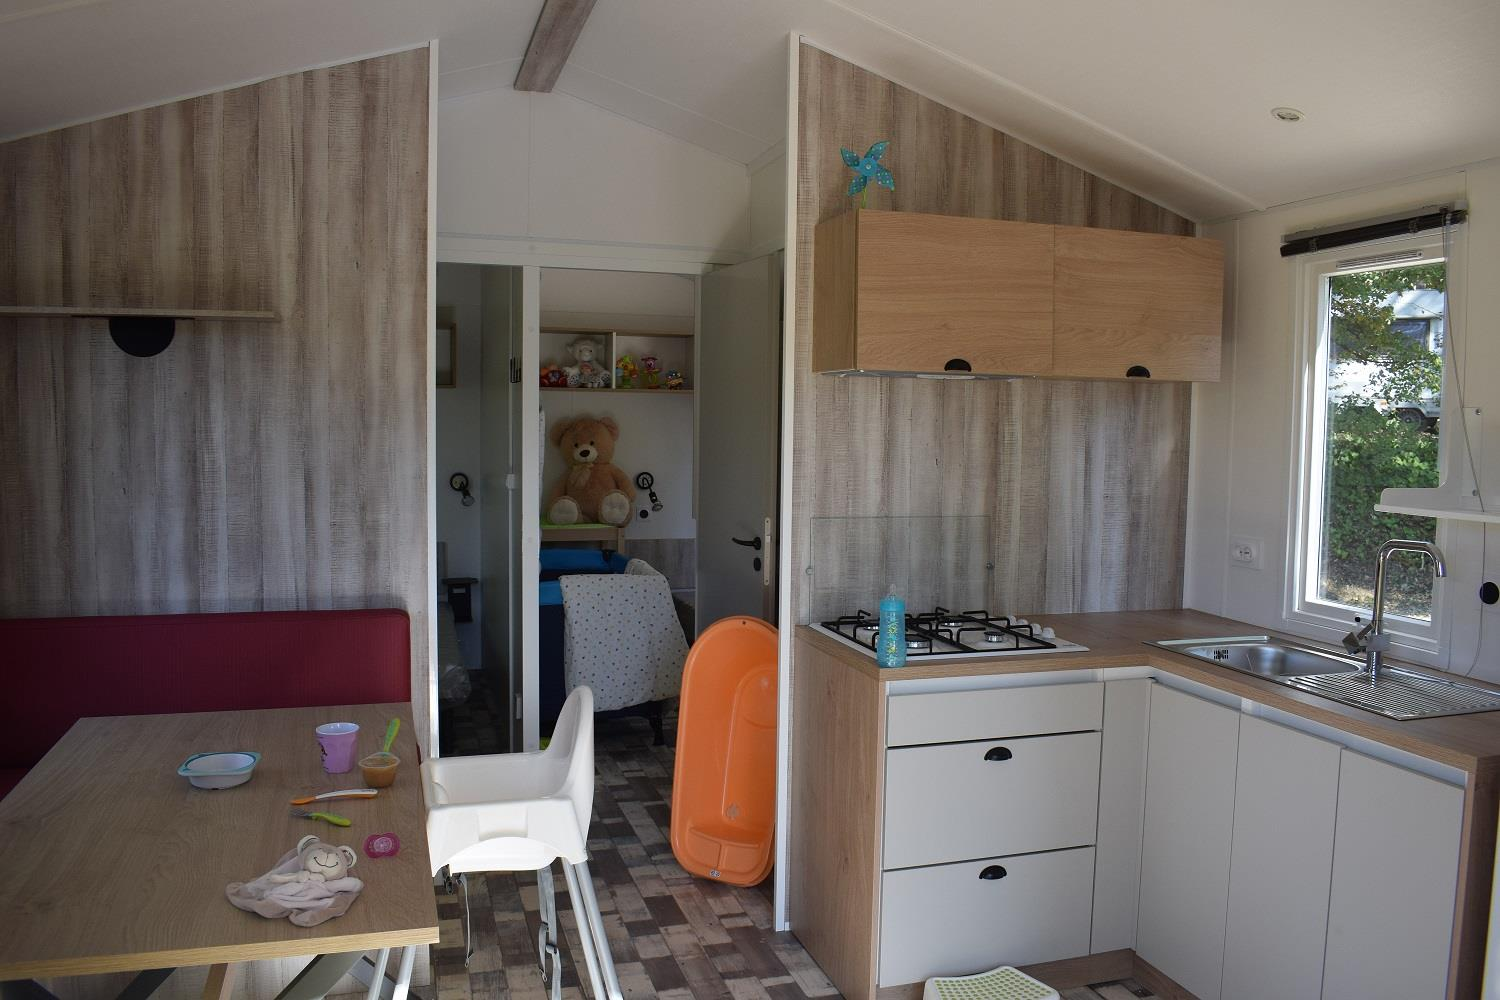 Alloggio - Mobil Home 2 Rooms 24M², Covered Terrace : 3 Persons + 1 Baby (Under 3 Years Old) - Domaine la Garenne